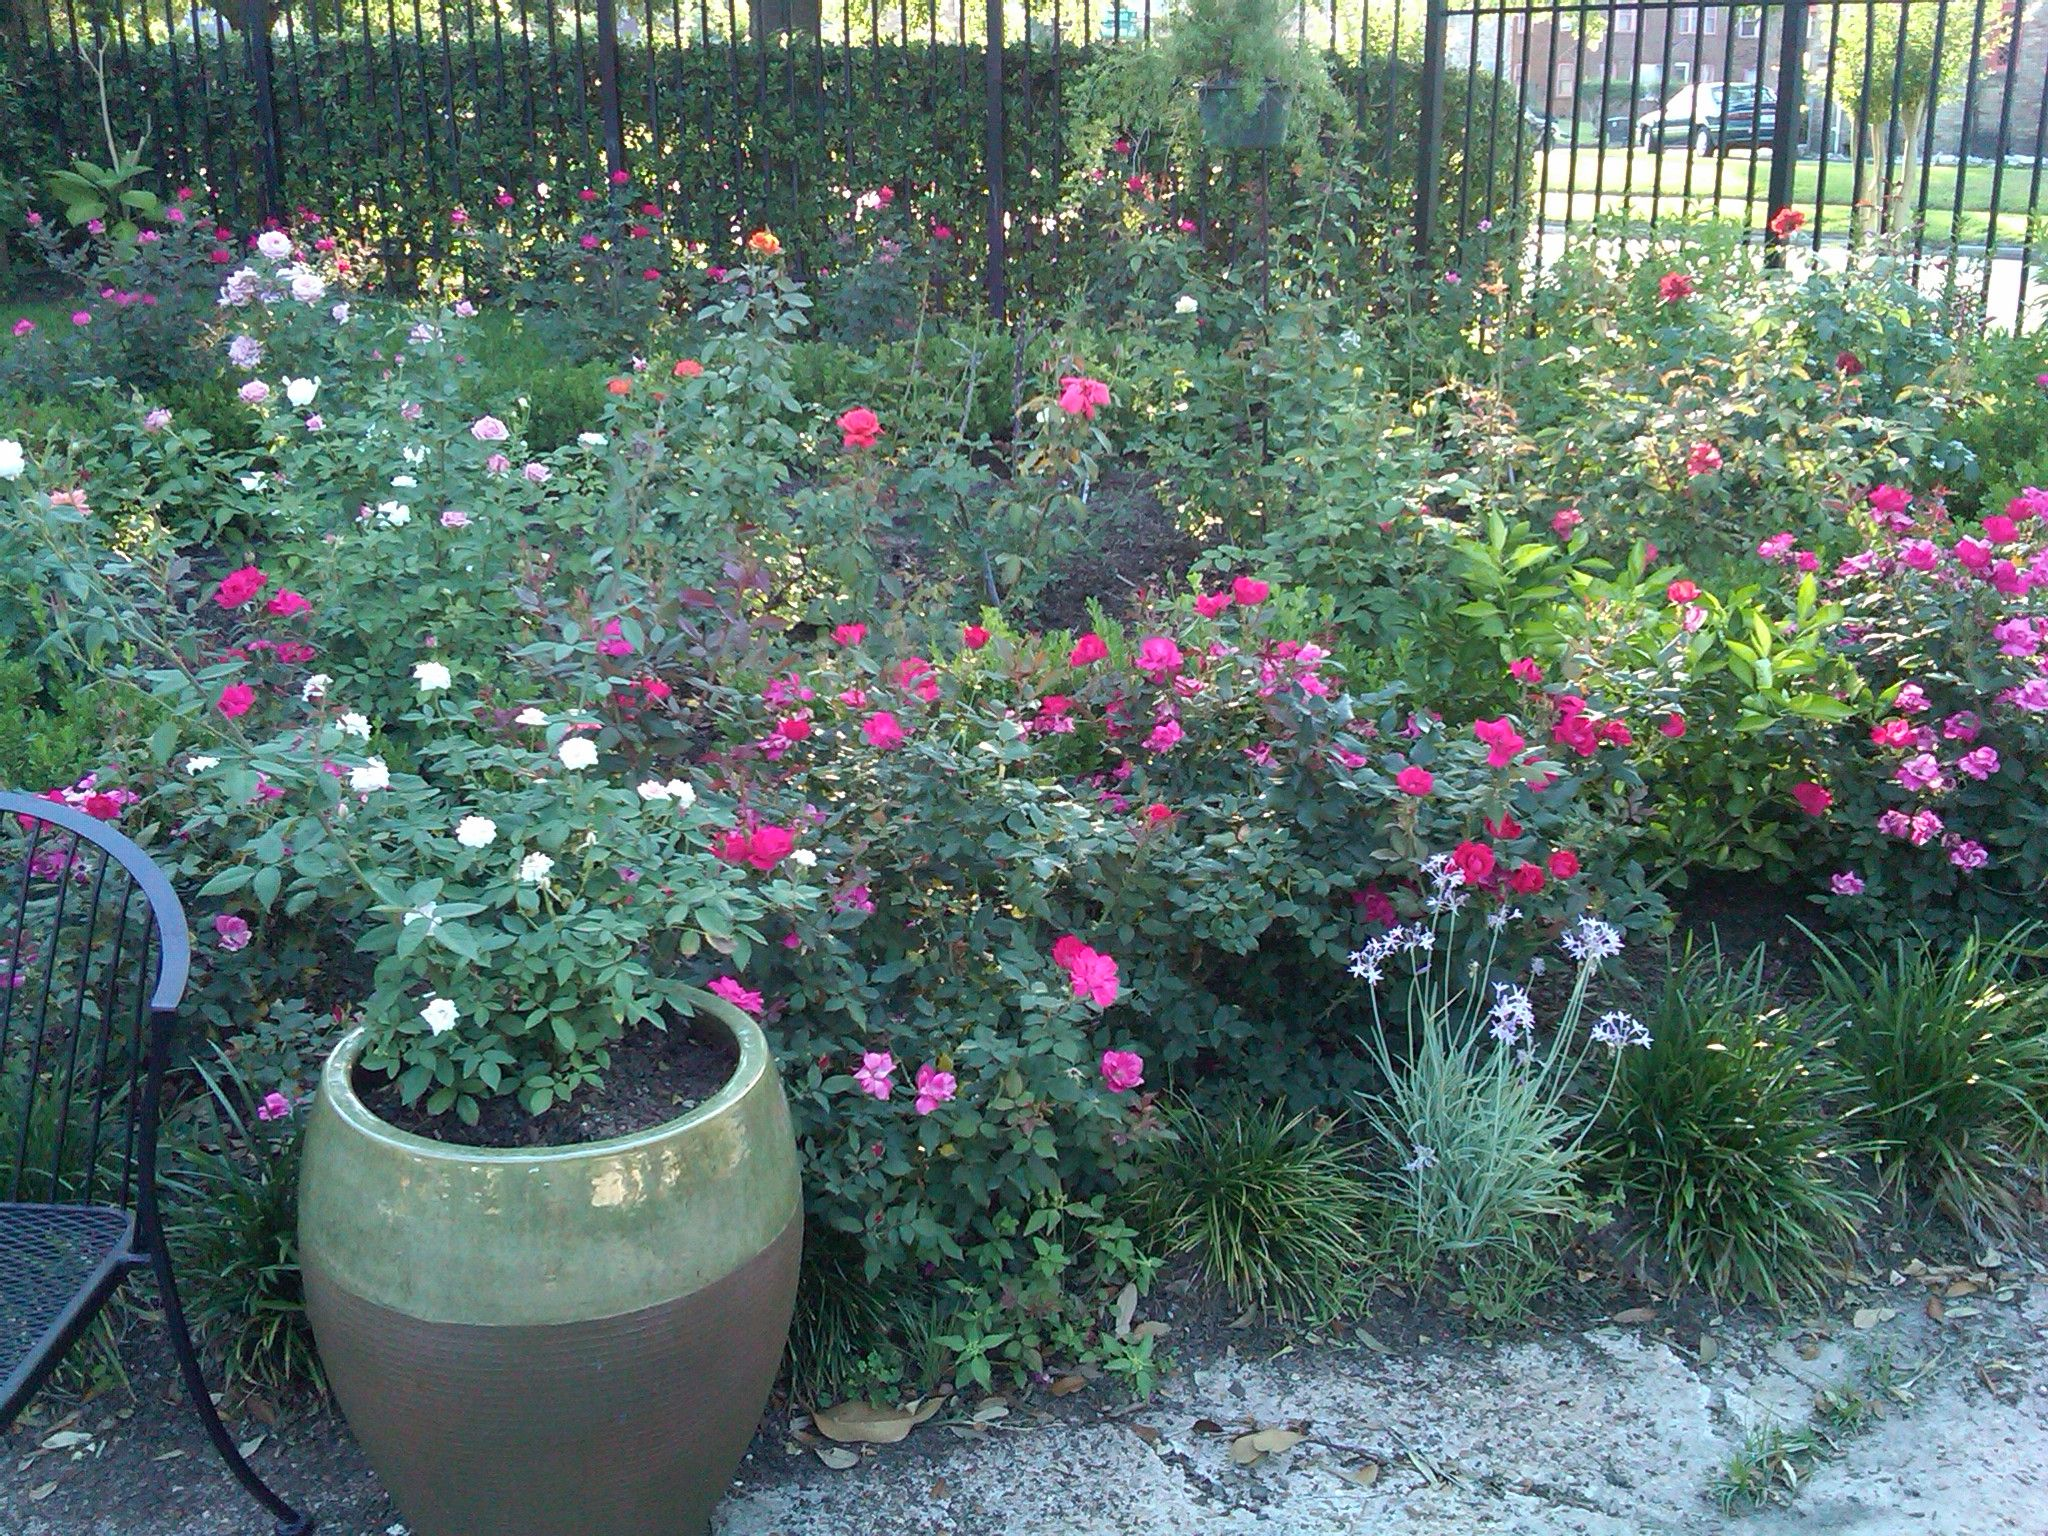 I love my garden - every day I visit the flowers and tend to them -- keeps me grounded.